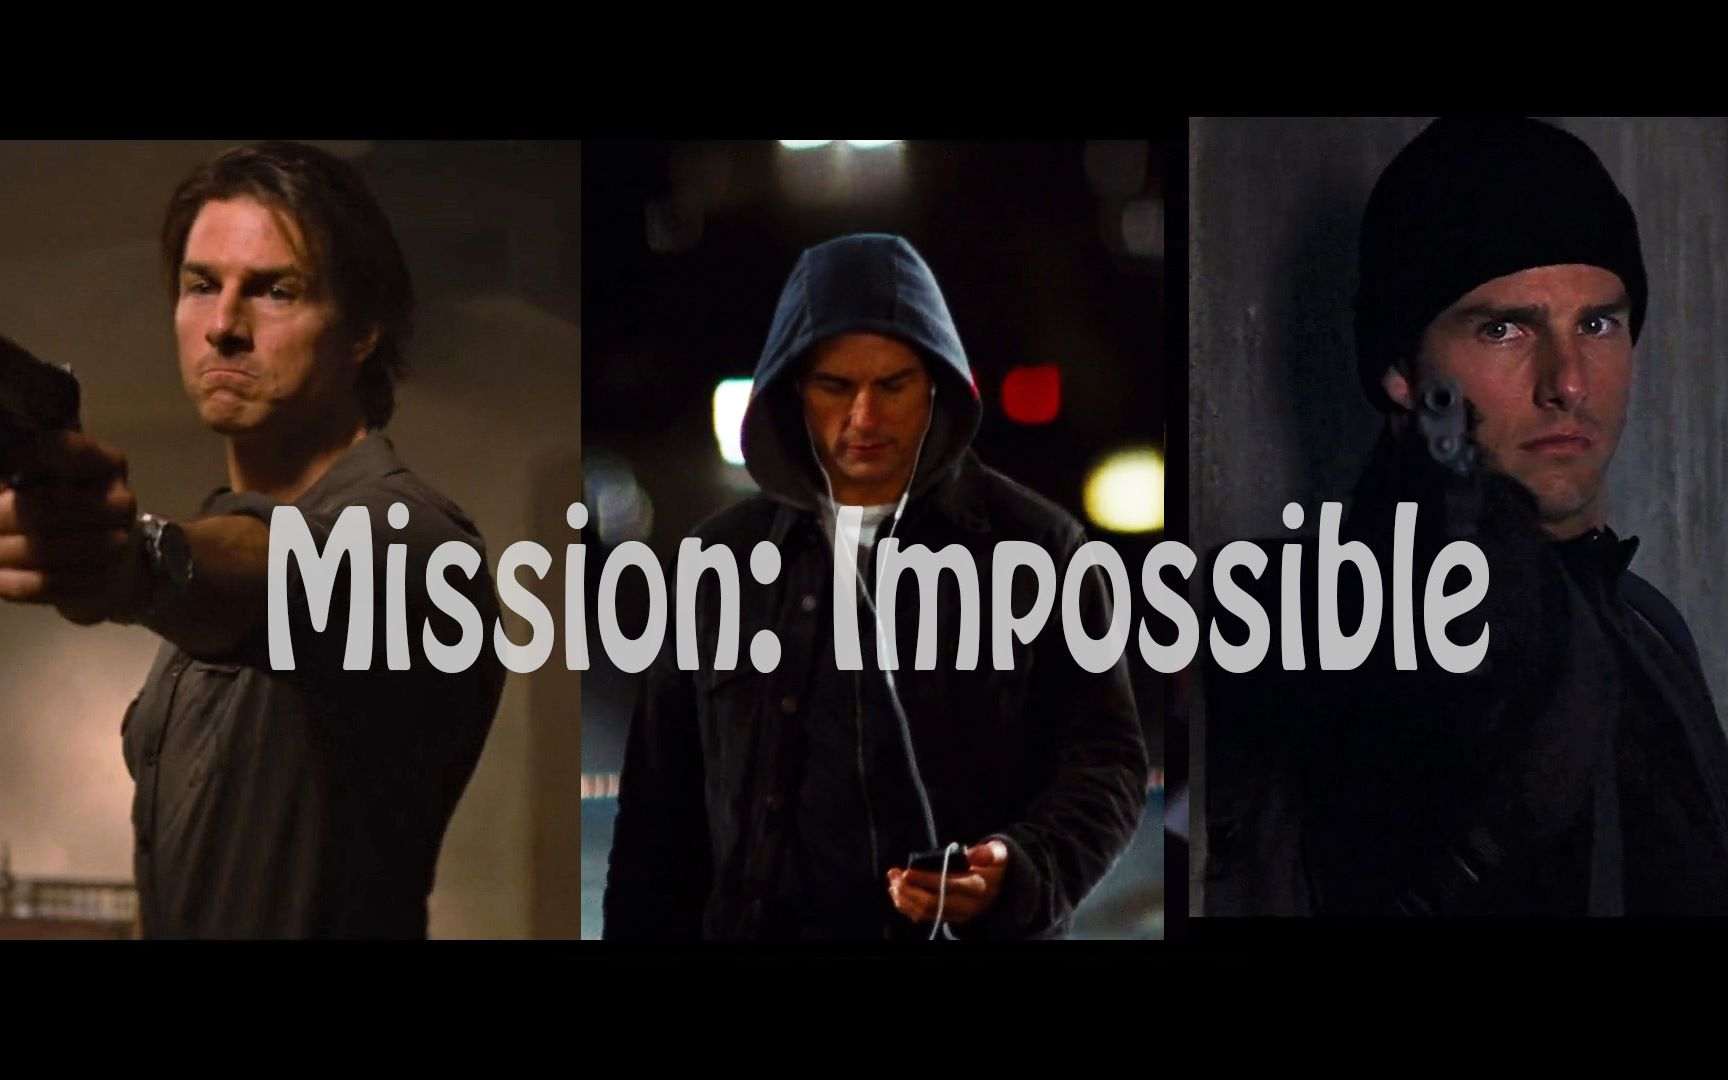 【1080P/激燃踩点系列/碟中谍/转场/节奏向】Mission: Impossible